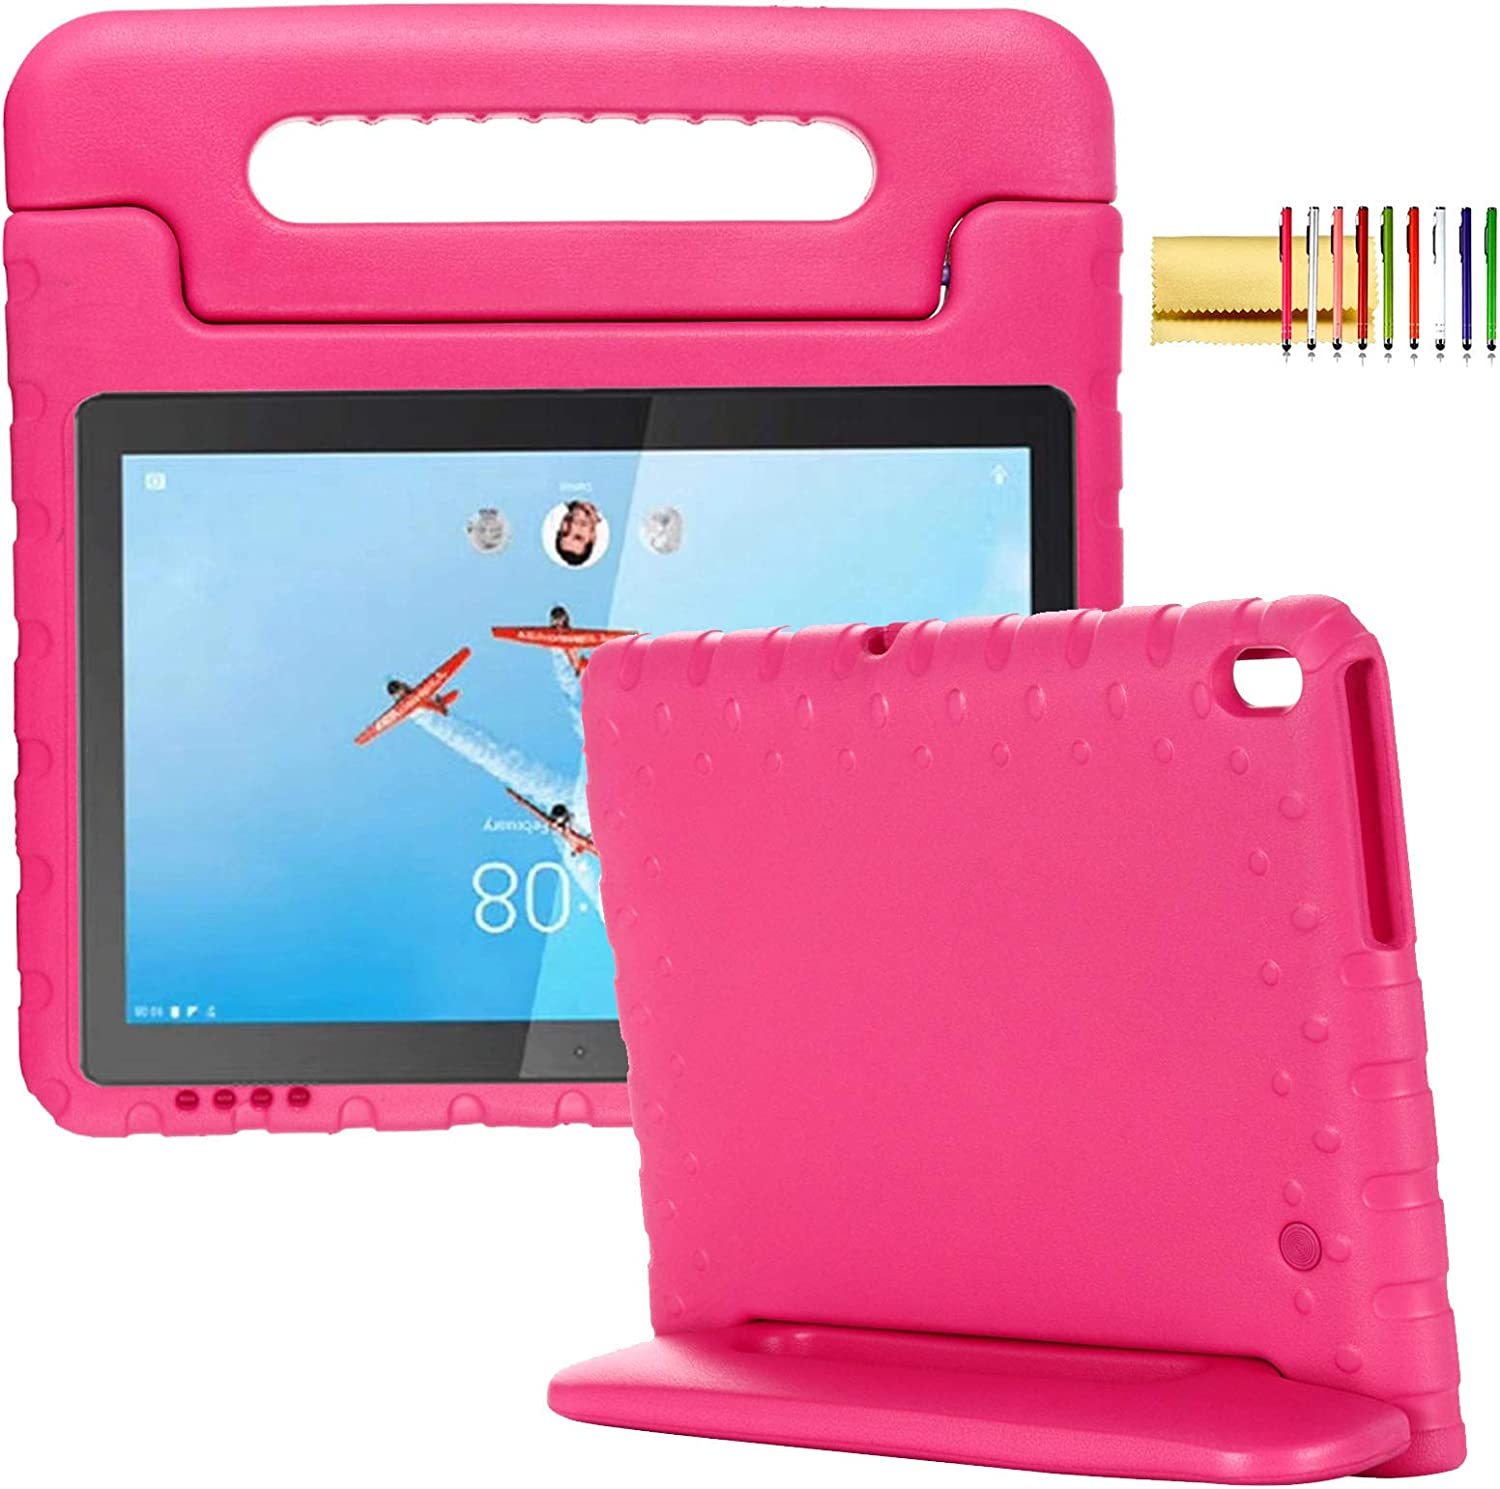 "Kids Case for Lenovo Tab E10 (TB-X104) 10.1"" Tablet 2018, Techcircle Handle Stand Lightweight EVA Foam Bumper Protective Rugged Drop Protection Child Proof Cover Shockproof Kid-Friendly Case, Rose"